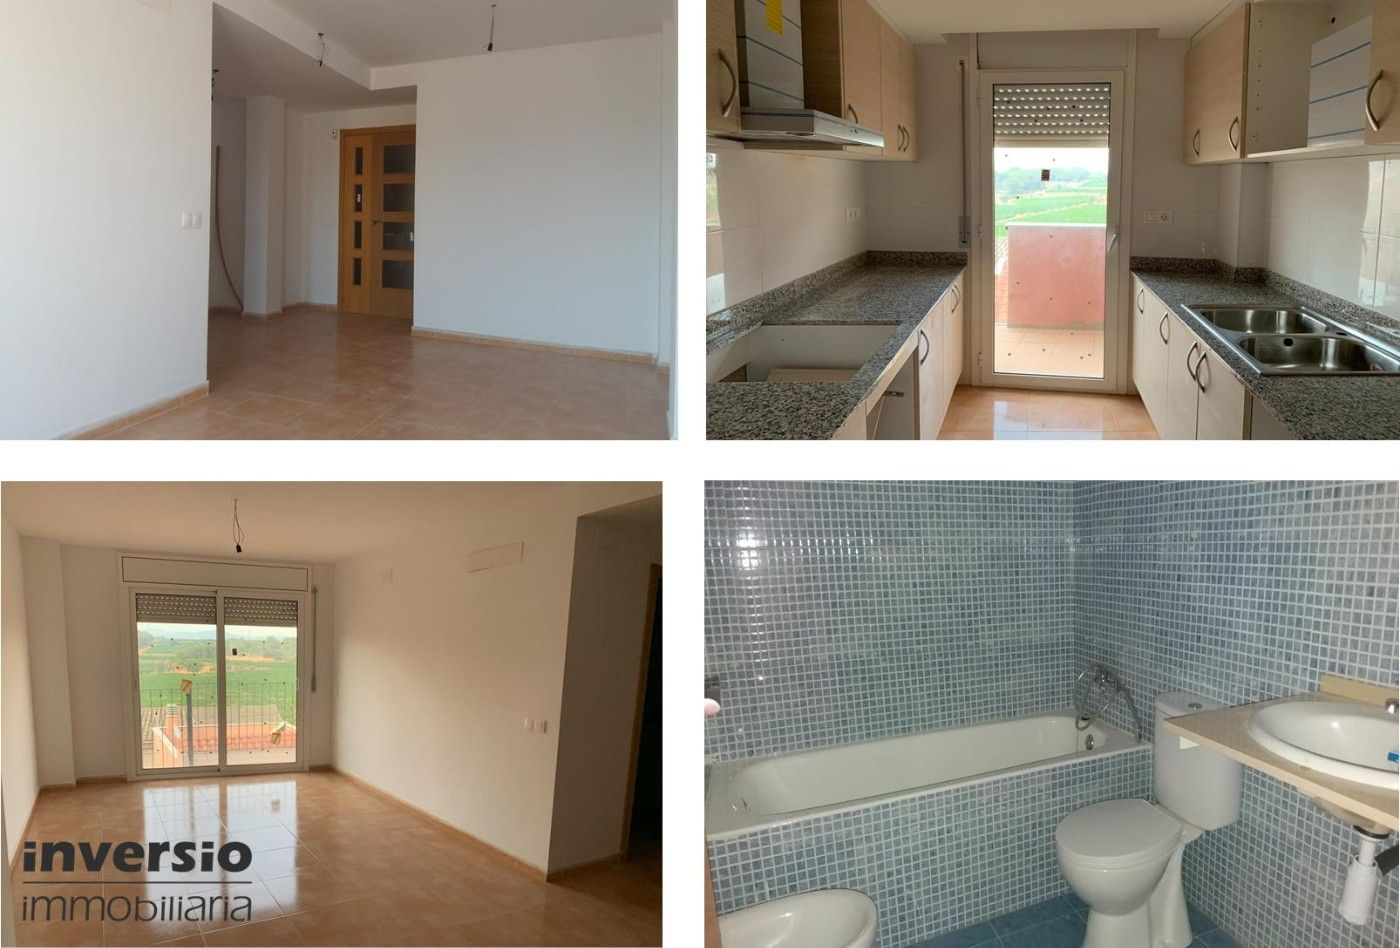 Flat in Carrer major, 23. Oportunidad. piso 2 hab.